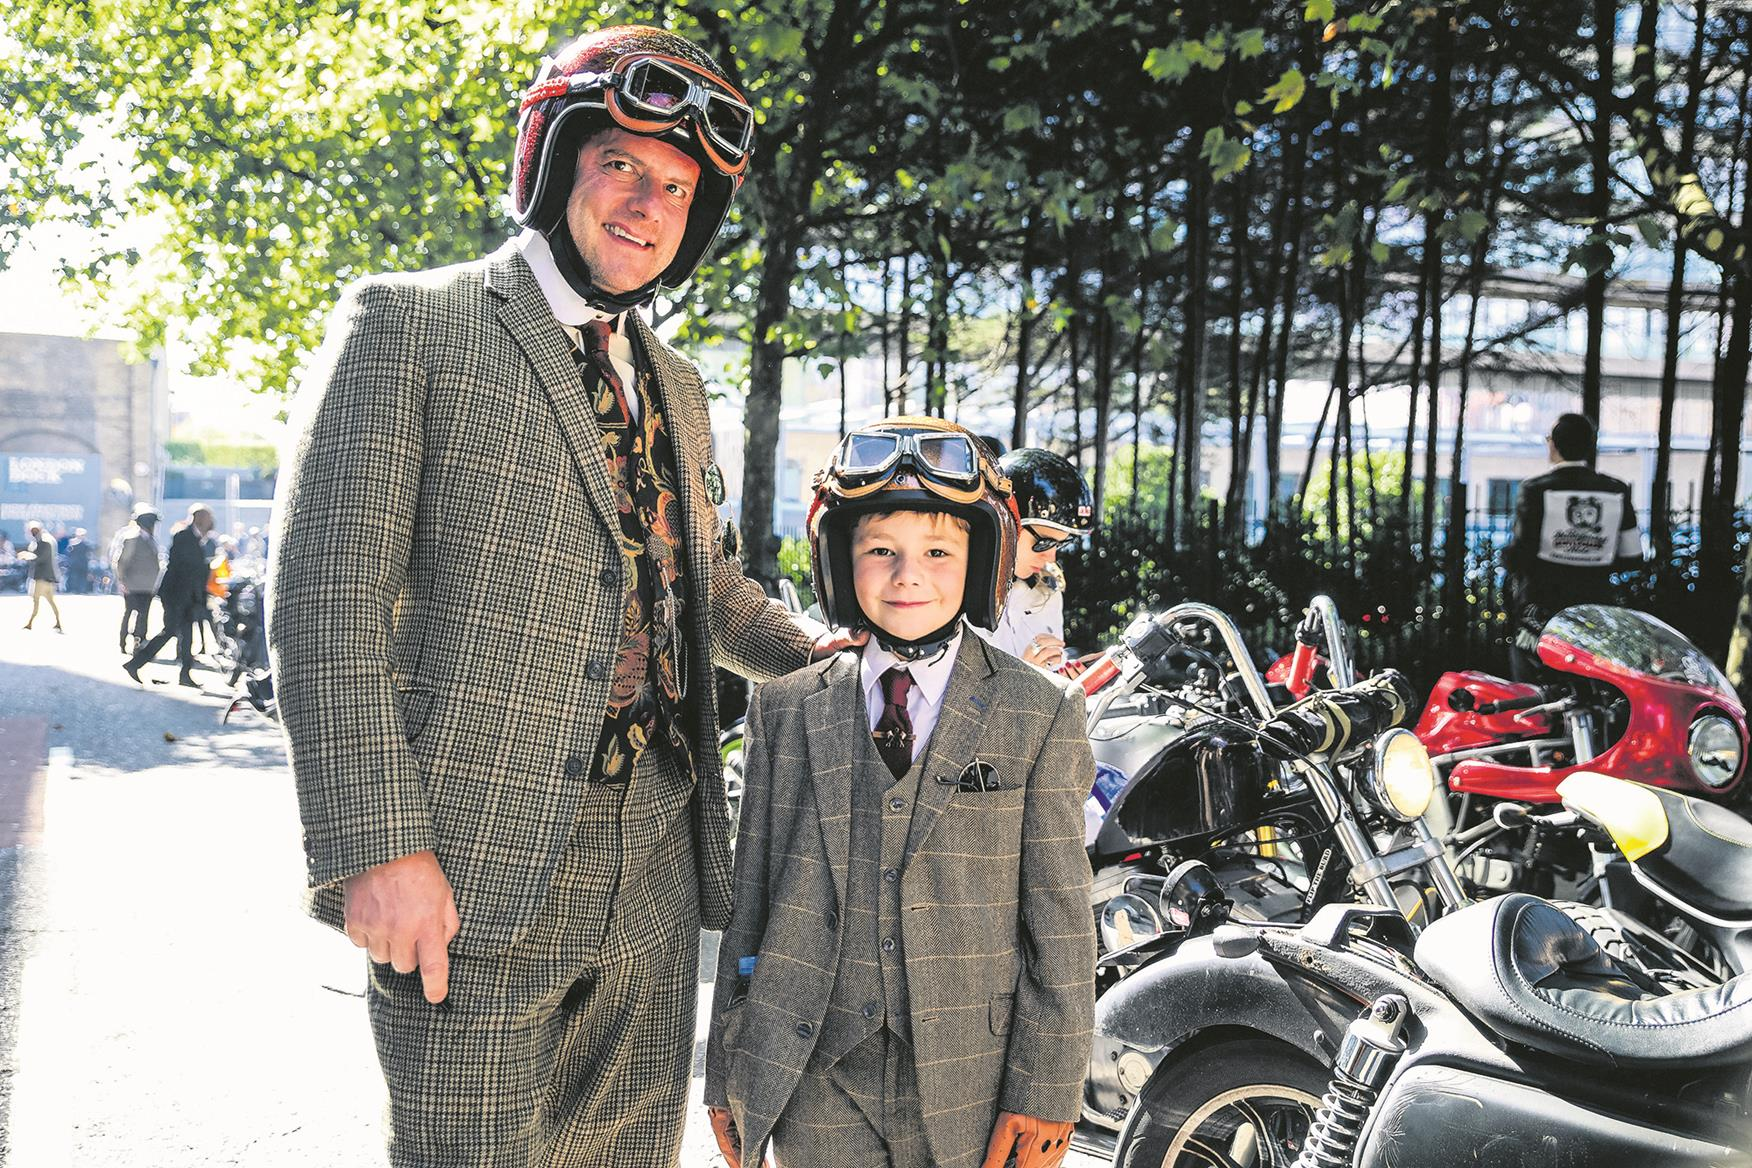 Tweed jackets are not compulsory at the Distinguished Gentleman's Ride